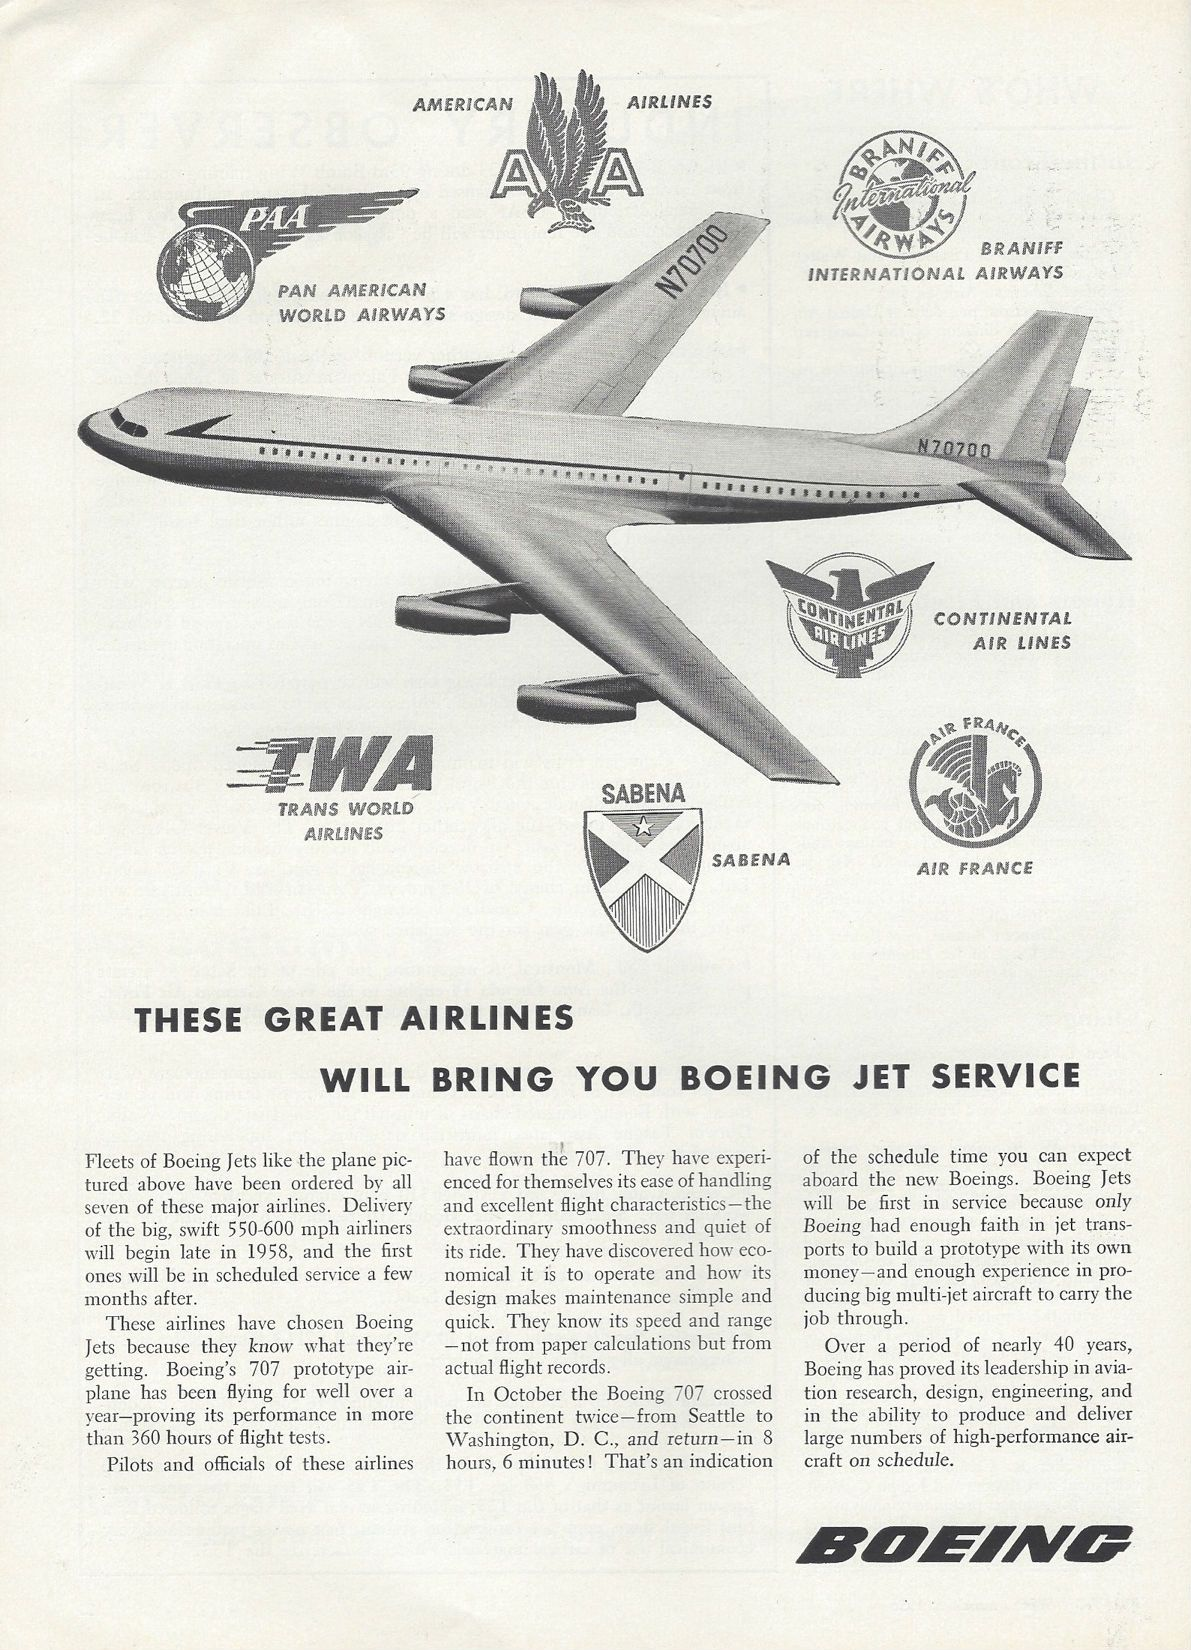 Almost two years after the rollout of the 707 prototype at